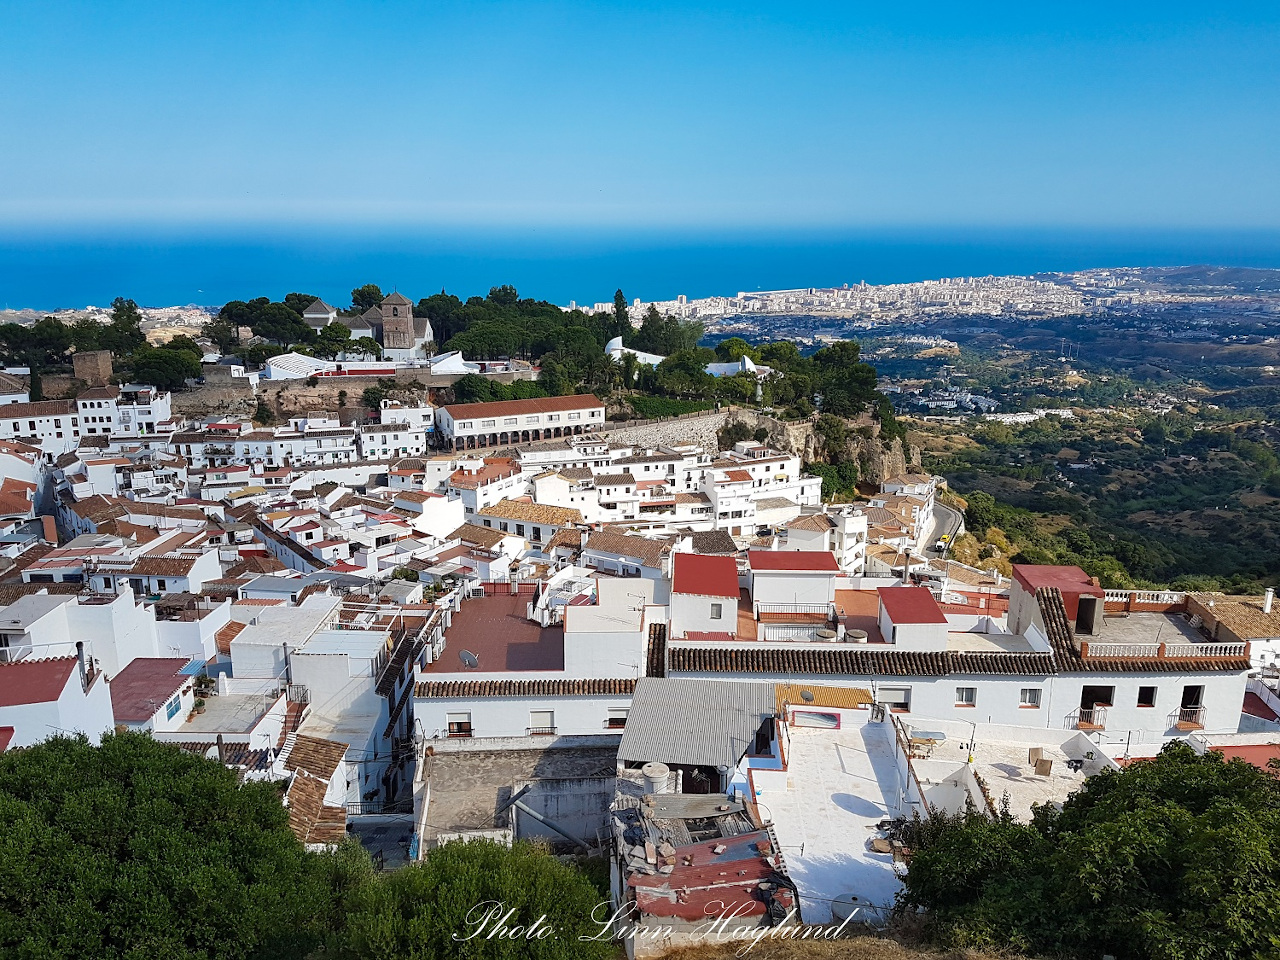 The view of Mijas Pueblo from the little church above the village. What to do in 3 days in Costa del Sol, Spain